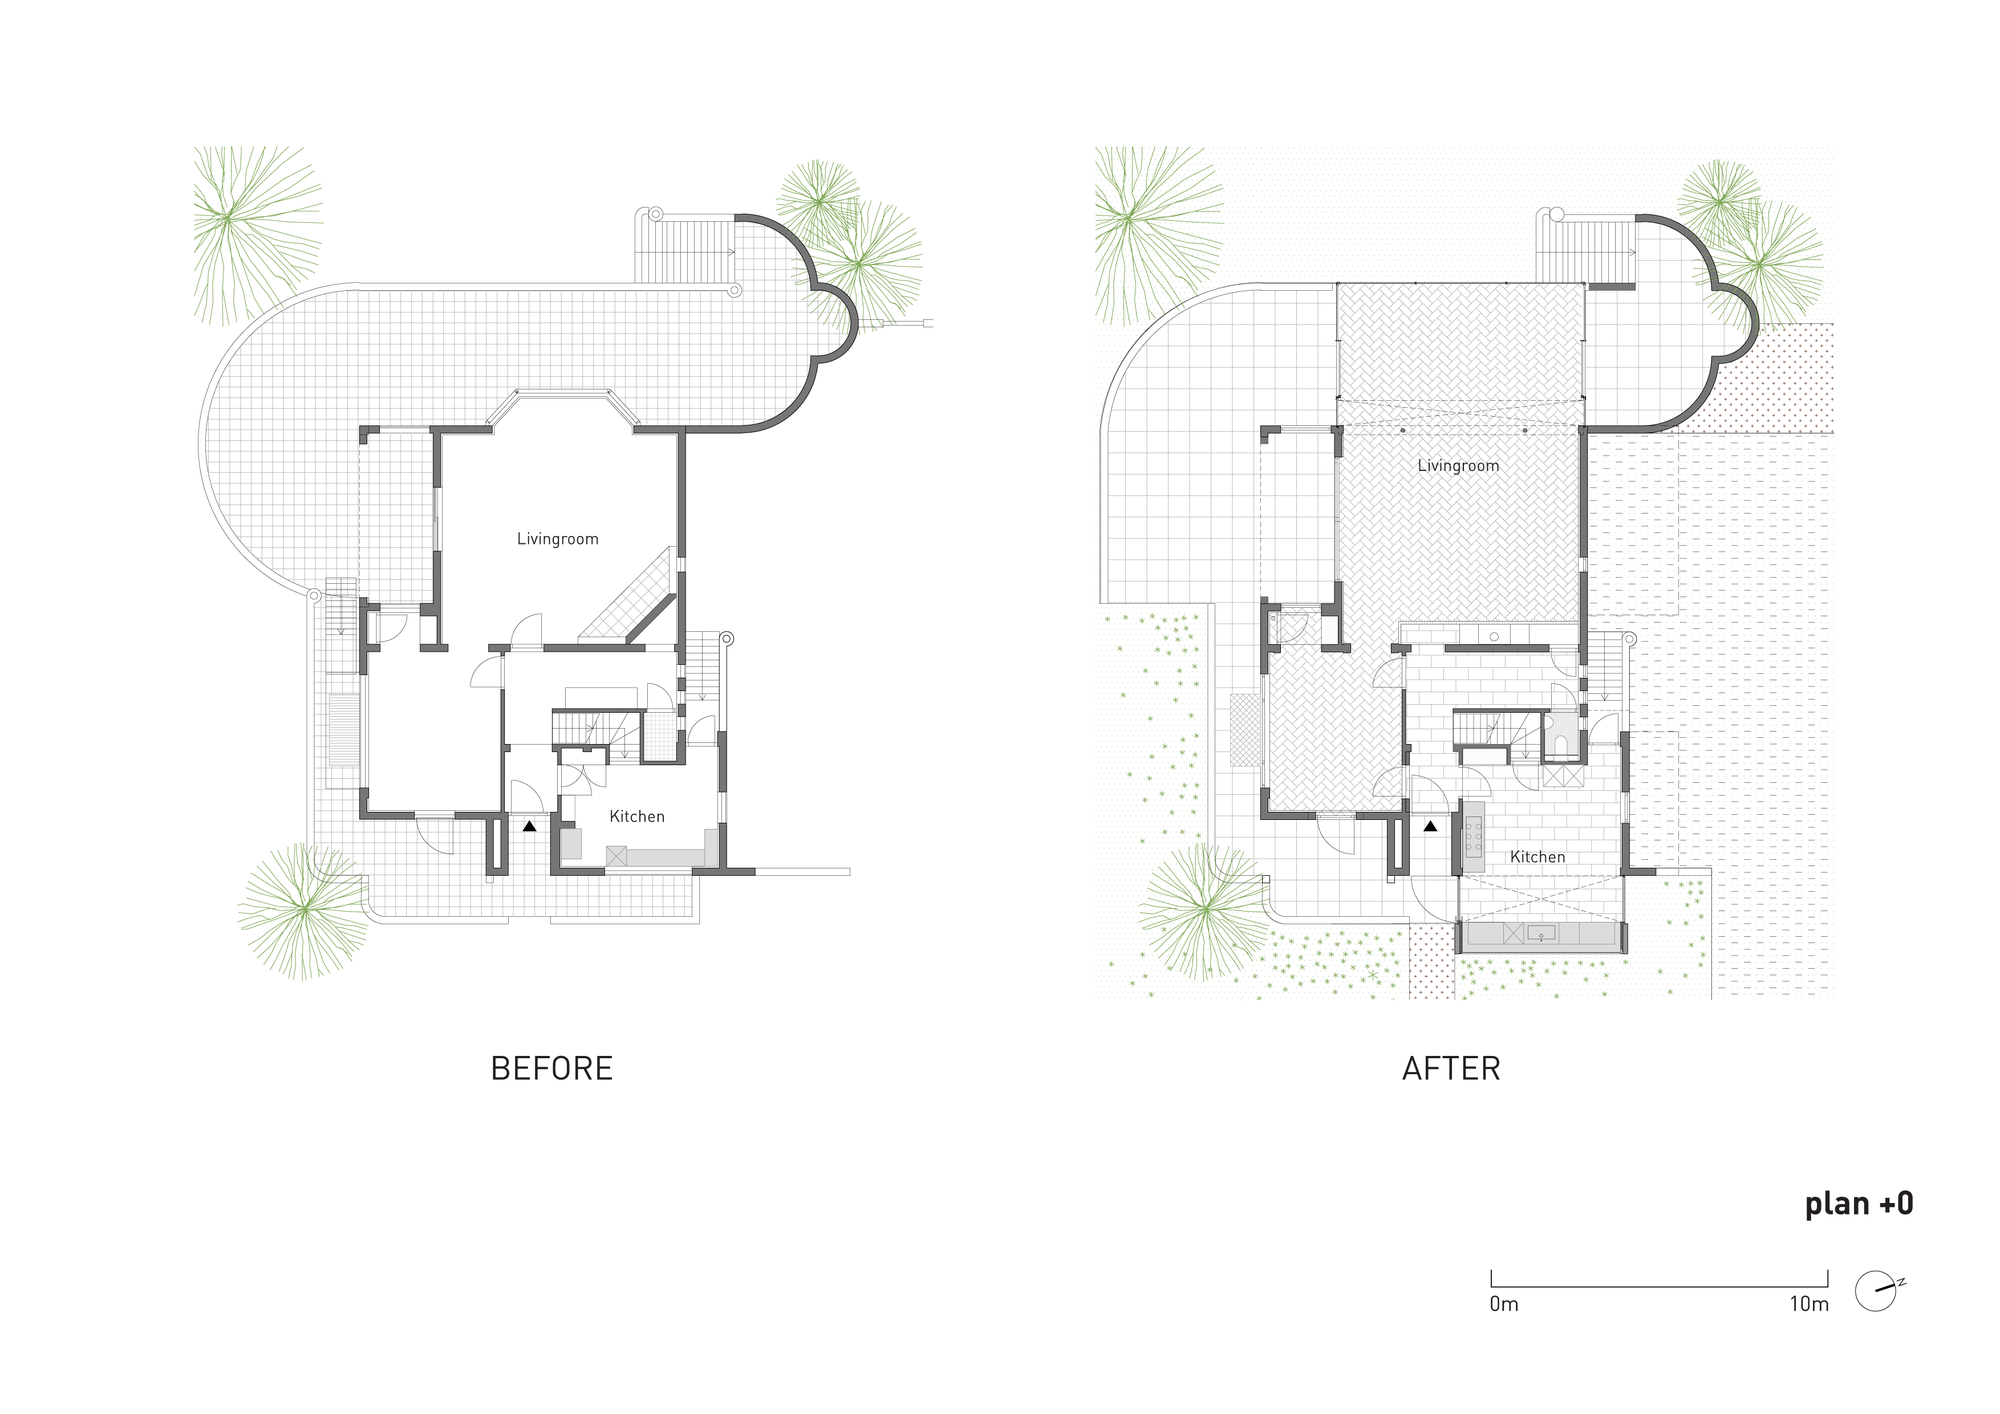 5018088028ba0d49f5001627 Under Pohutukawa Herbst Architects Elevation in addition Floor Plans besides Rcc House Plans Designs Design Inspirations Ground Floor 3 Bedroom Gallery besides House 20plan furthermore 515b08acb3fc4b29d60000b0 House N Maxwan Ground Floor Plans. on house floor plans